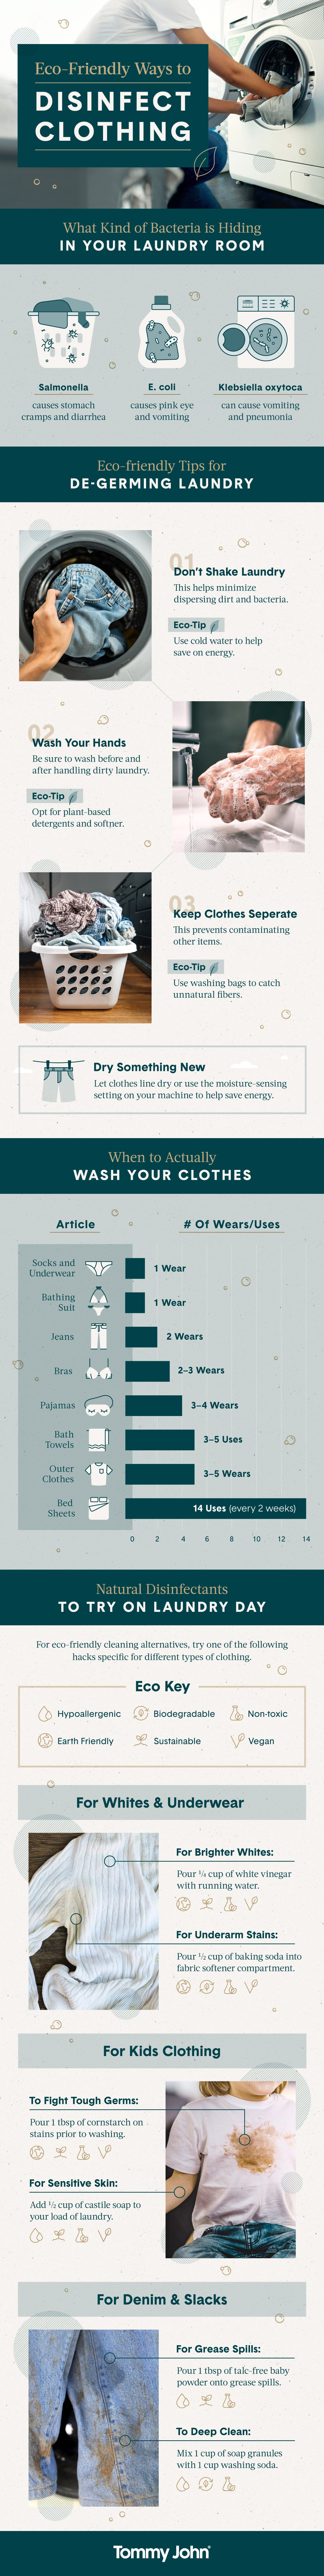 Eco-Friendly Ways to Clean Clothing